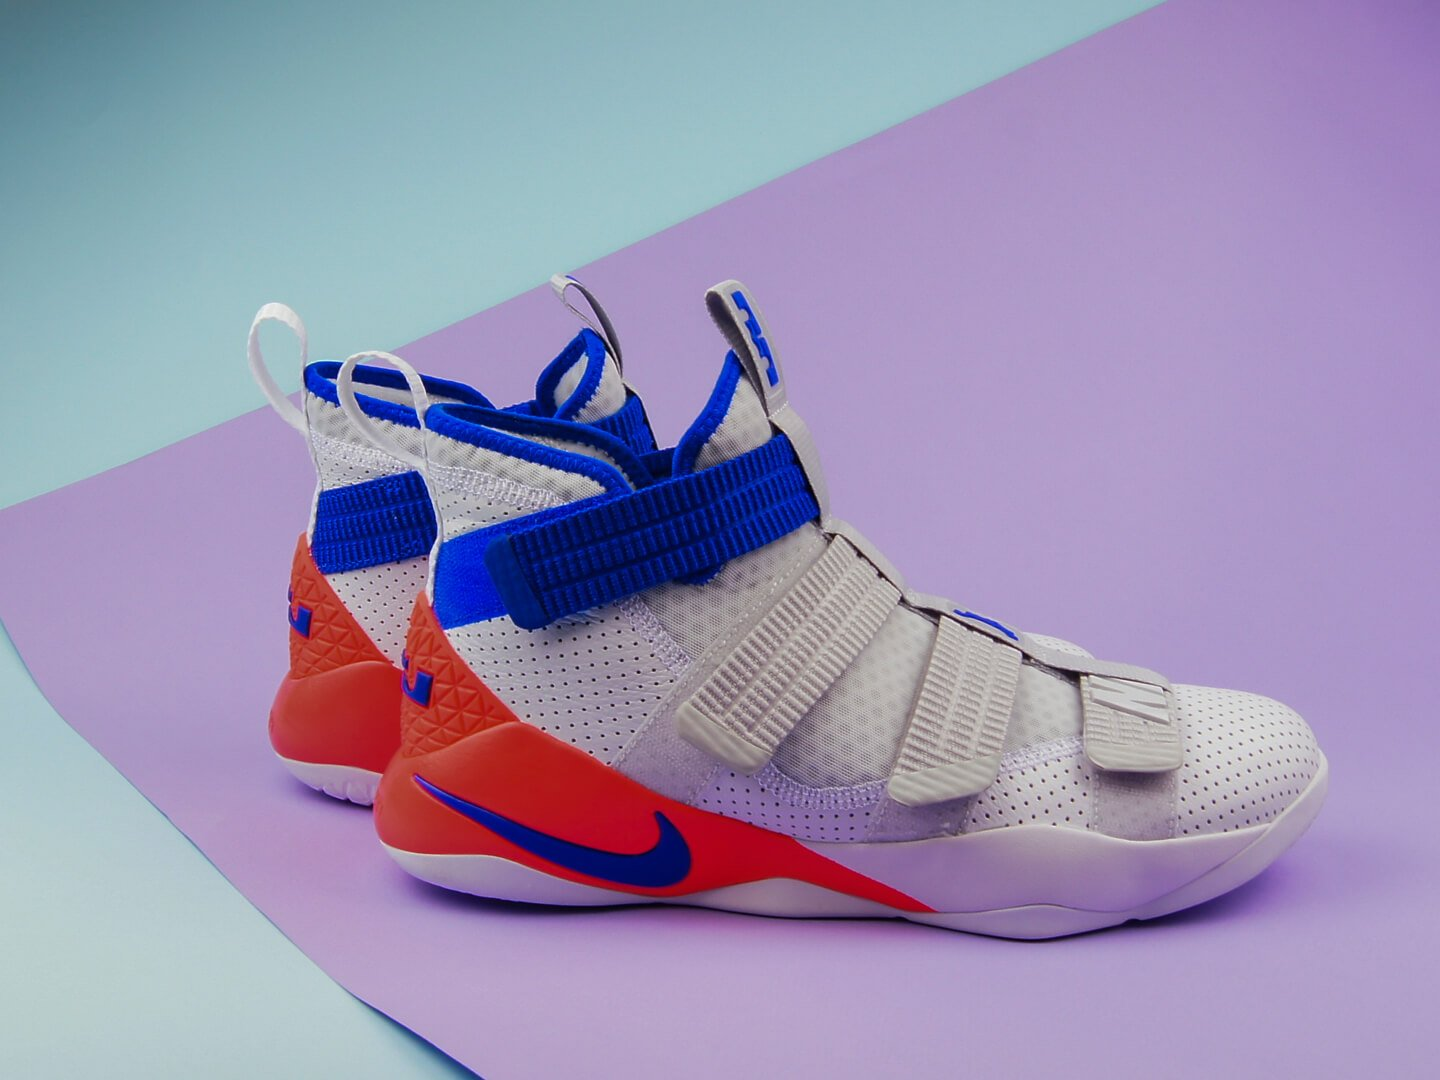 Мужские кроссовки Nike LeBron Soldier XI SFG, white/racer blue-infrared-pure platinum